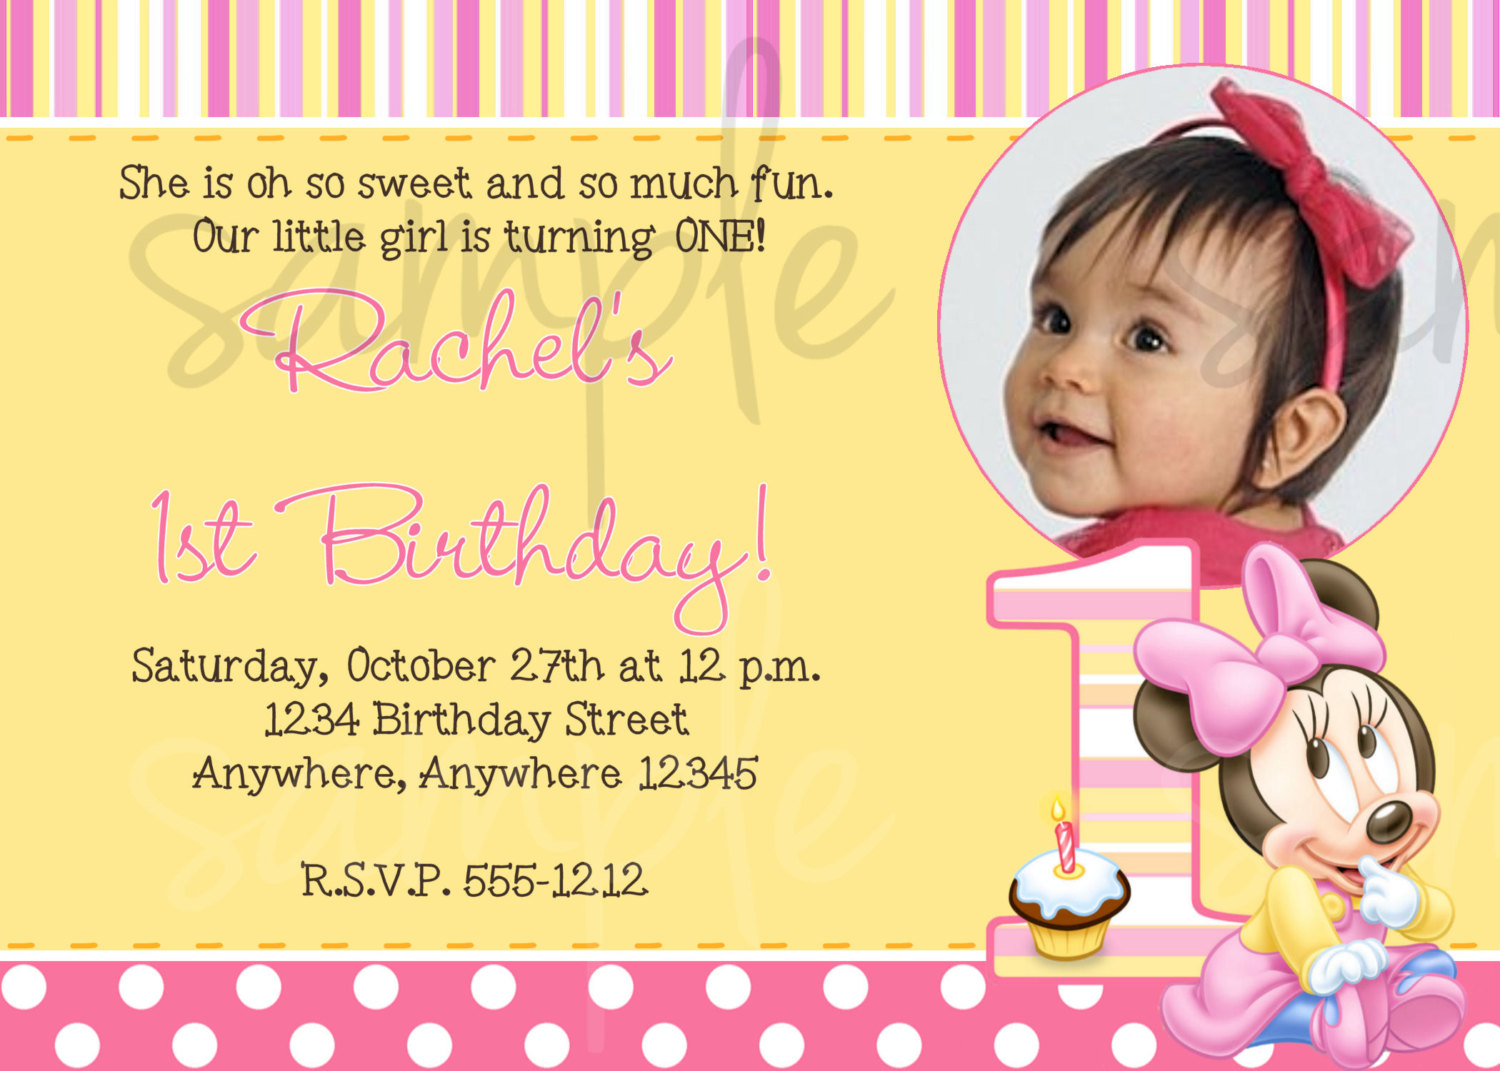 first year birthday invitation quotes ; birthday-invitation-quotes-with-stunning-appearance-for-stunning-Birthday-invitation-design-ideas-17